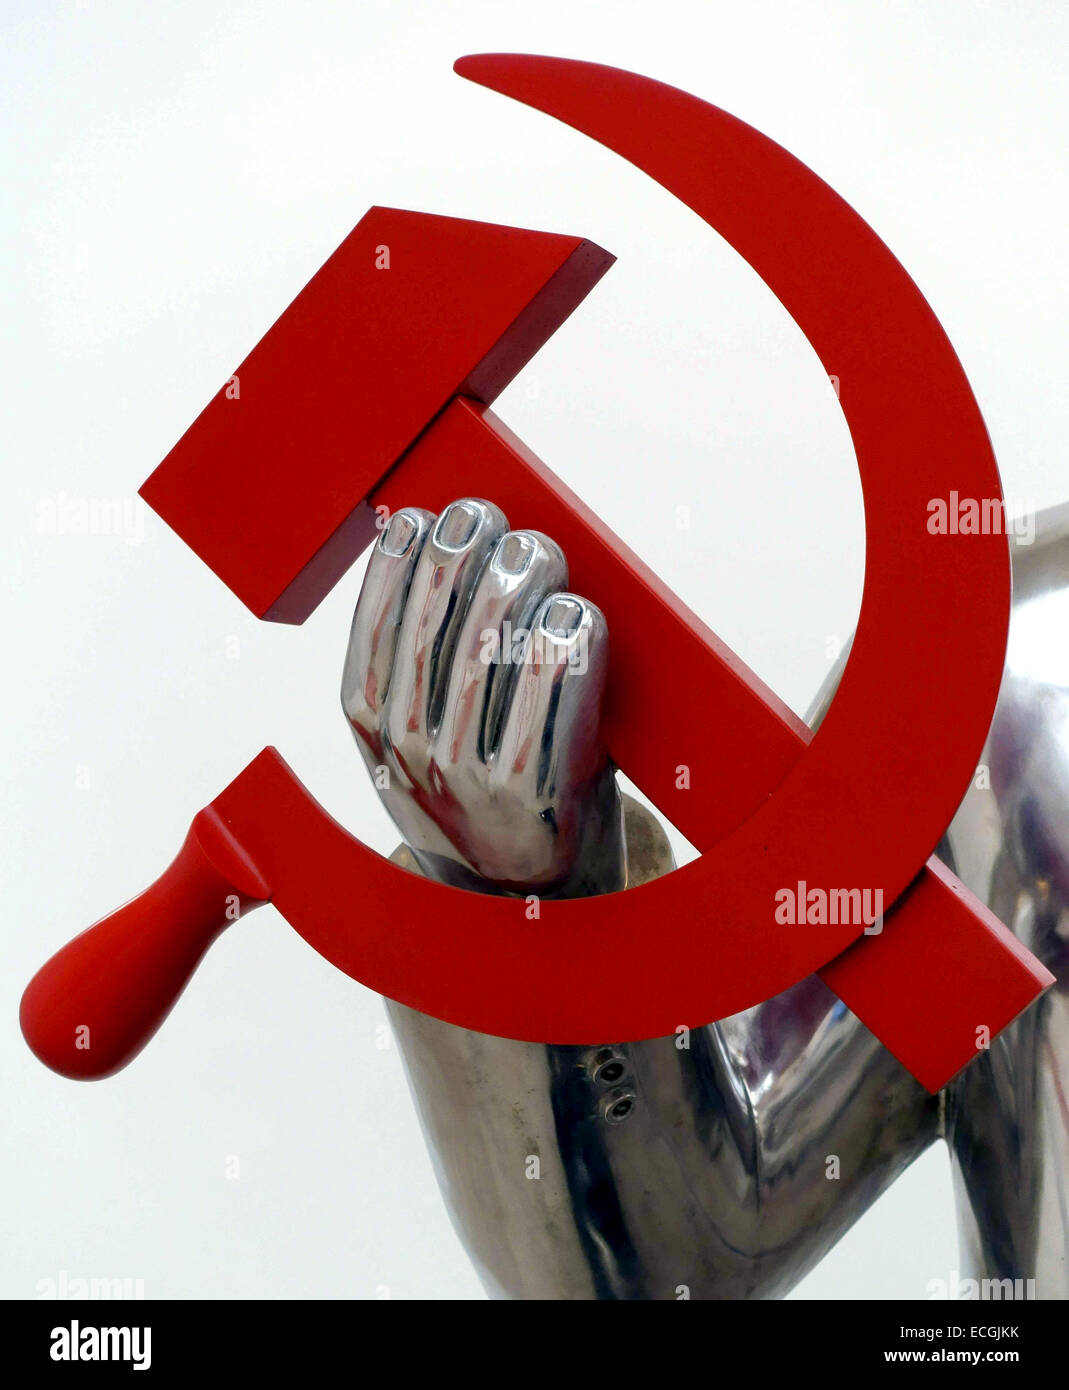 Hammer and Sickle - detail of sculpture in London art gallery - Stock Image